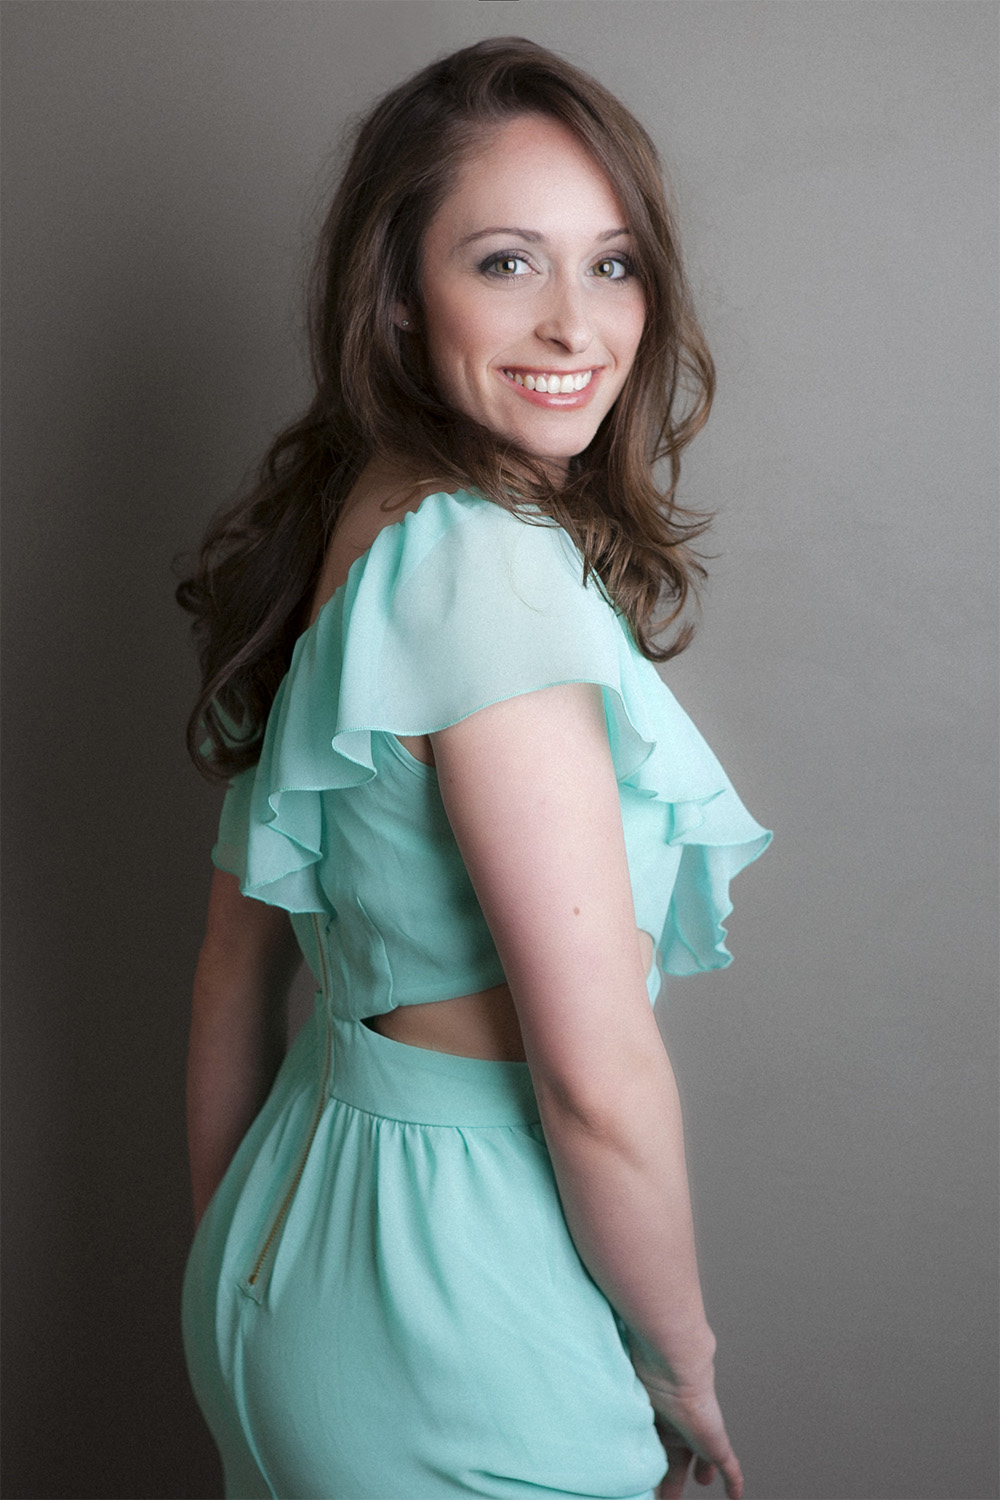 Glamour photographer in Massachusetts, gorgeous woman in a green girly dress smiling big to the camera